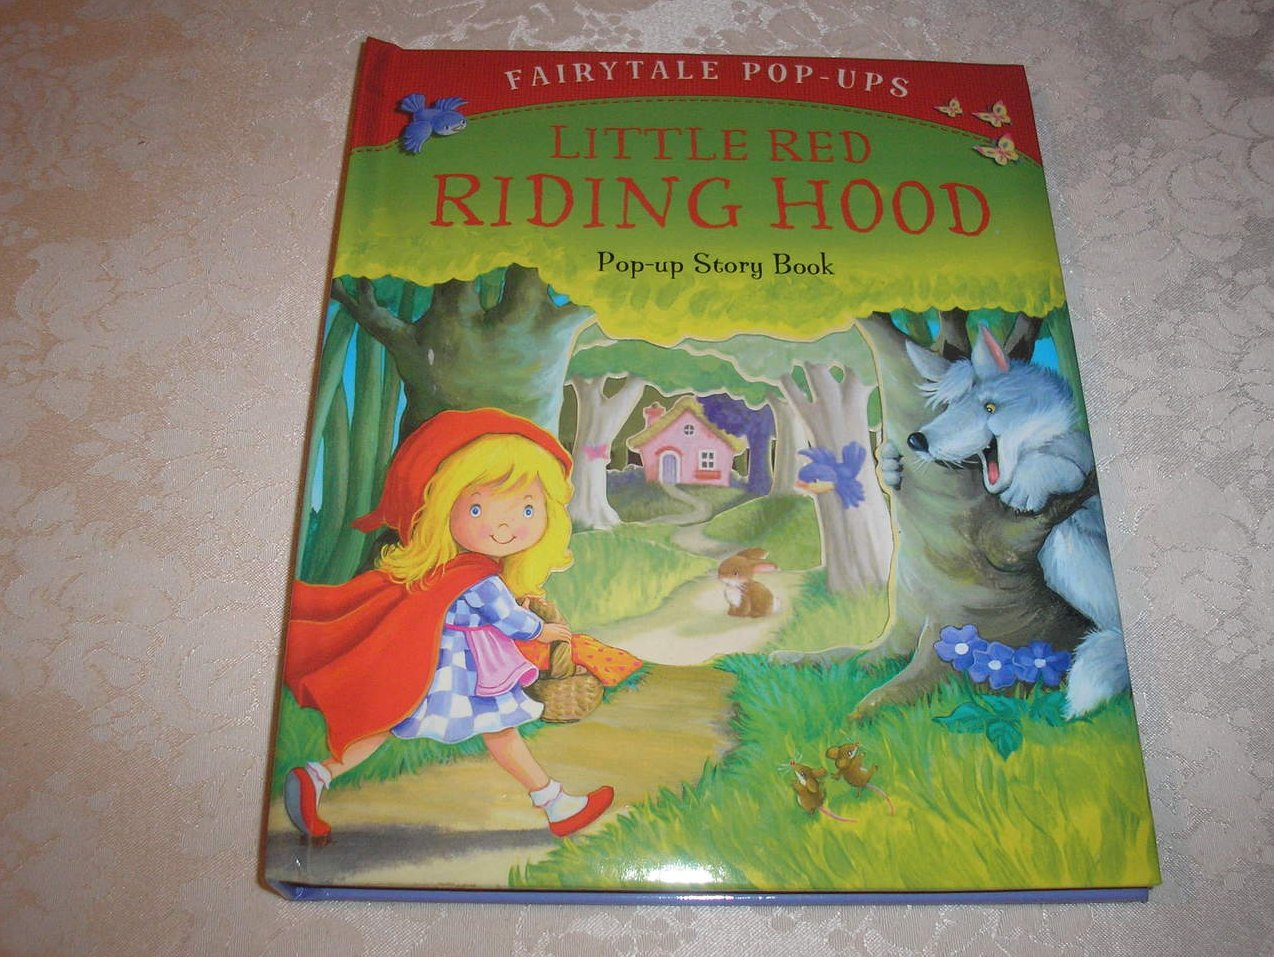 Little Red Riding Hood Fairytale Pop-Ups brand new hc